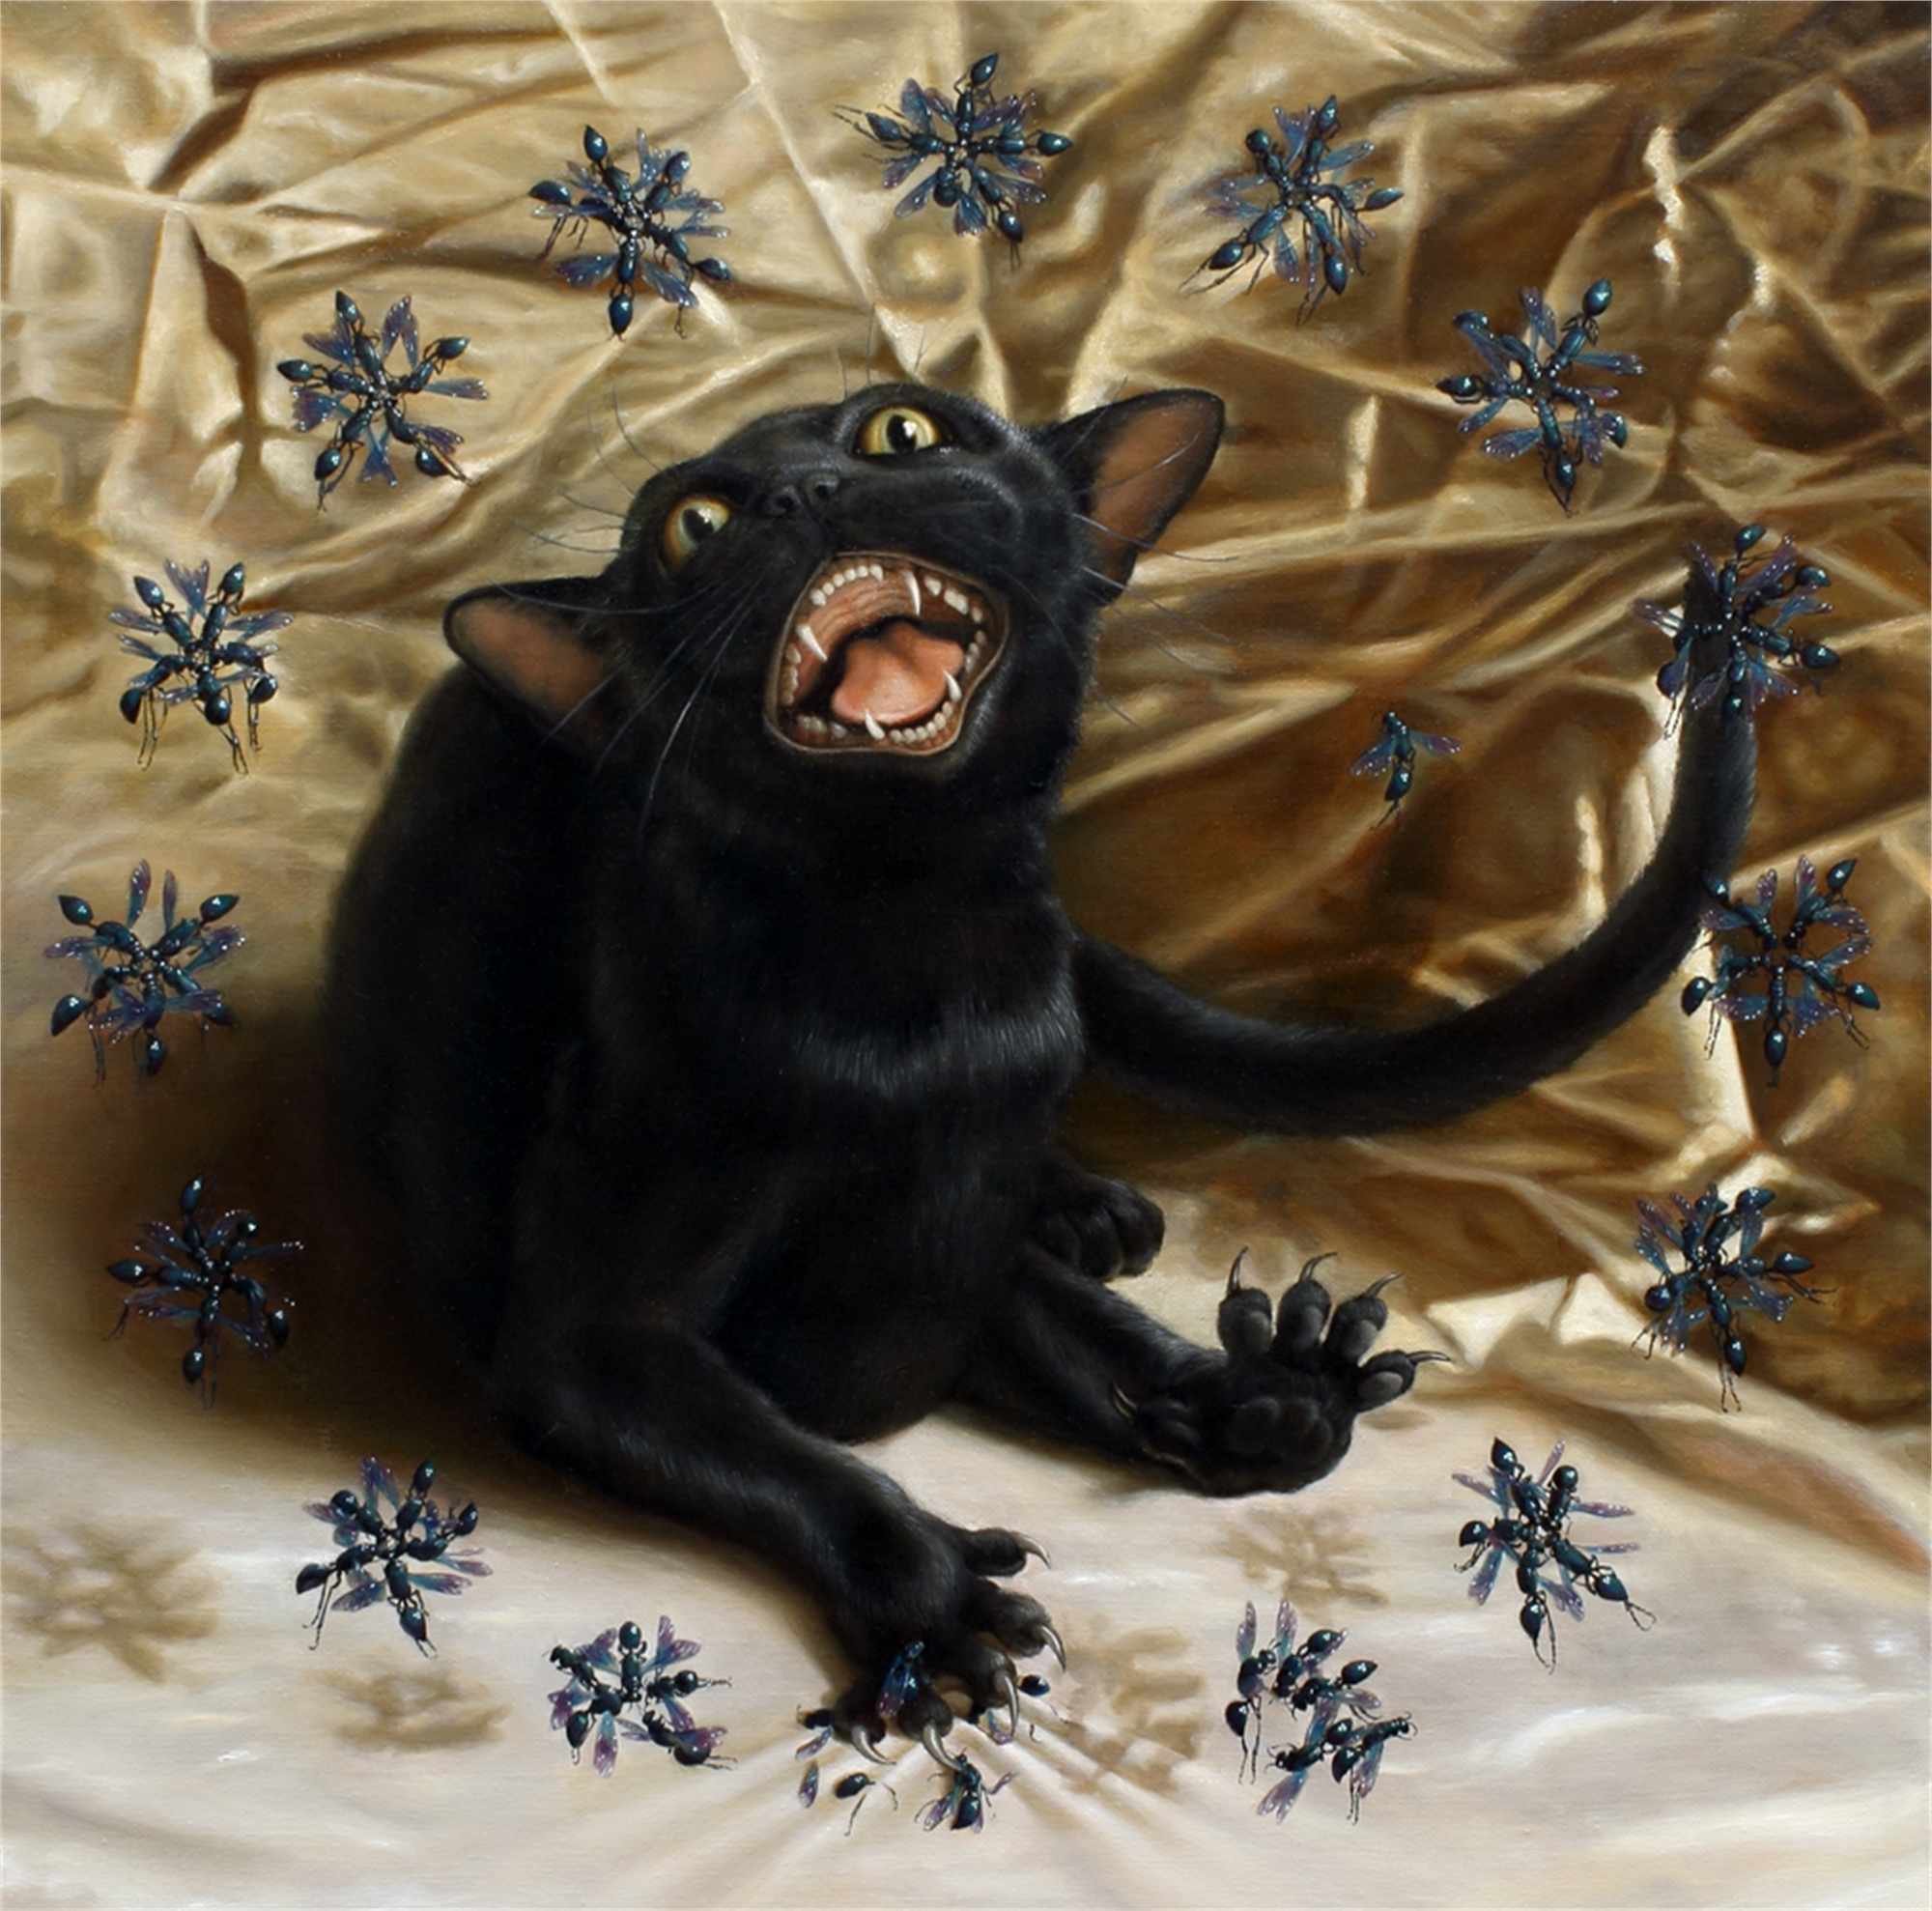 Cat with Wasps by Zane York